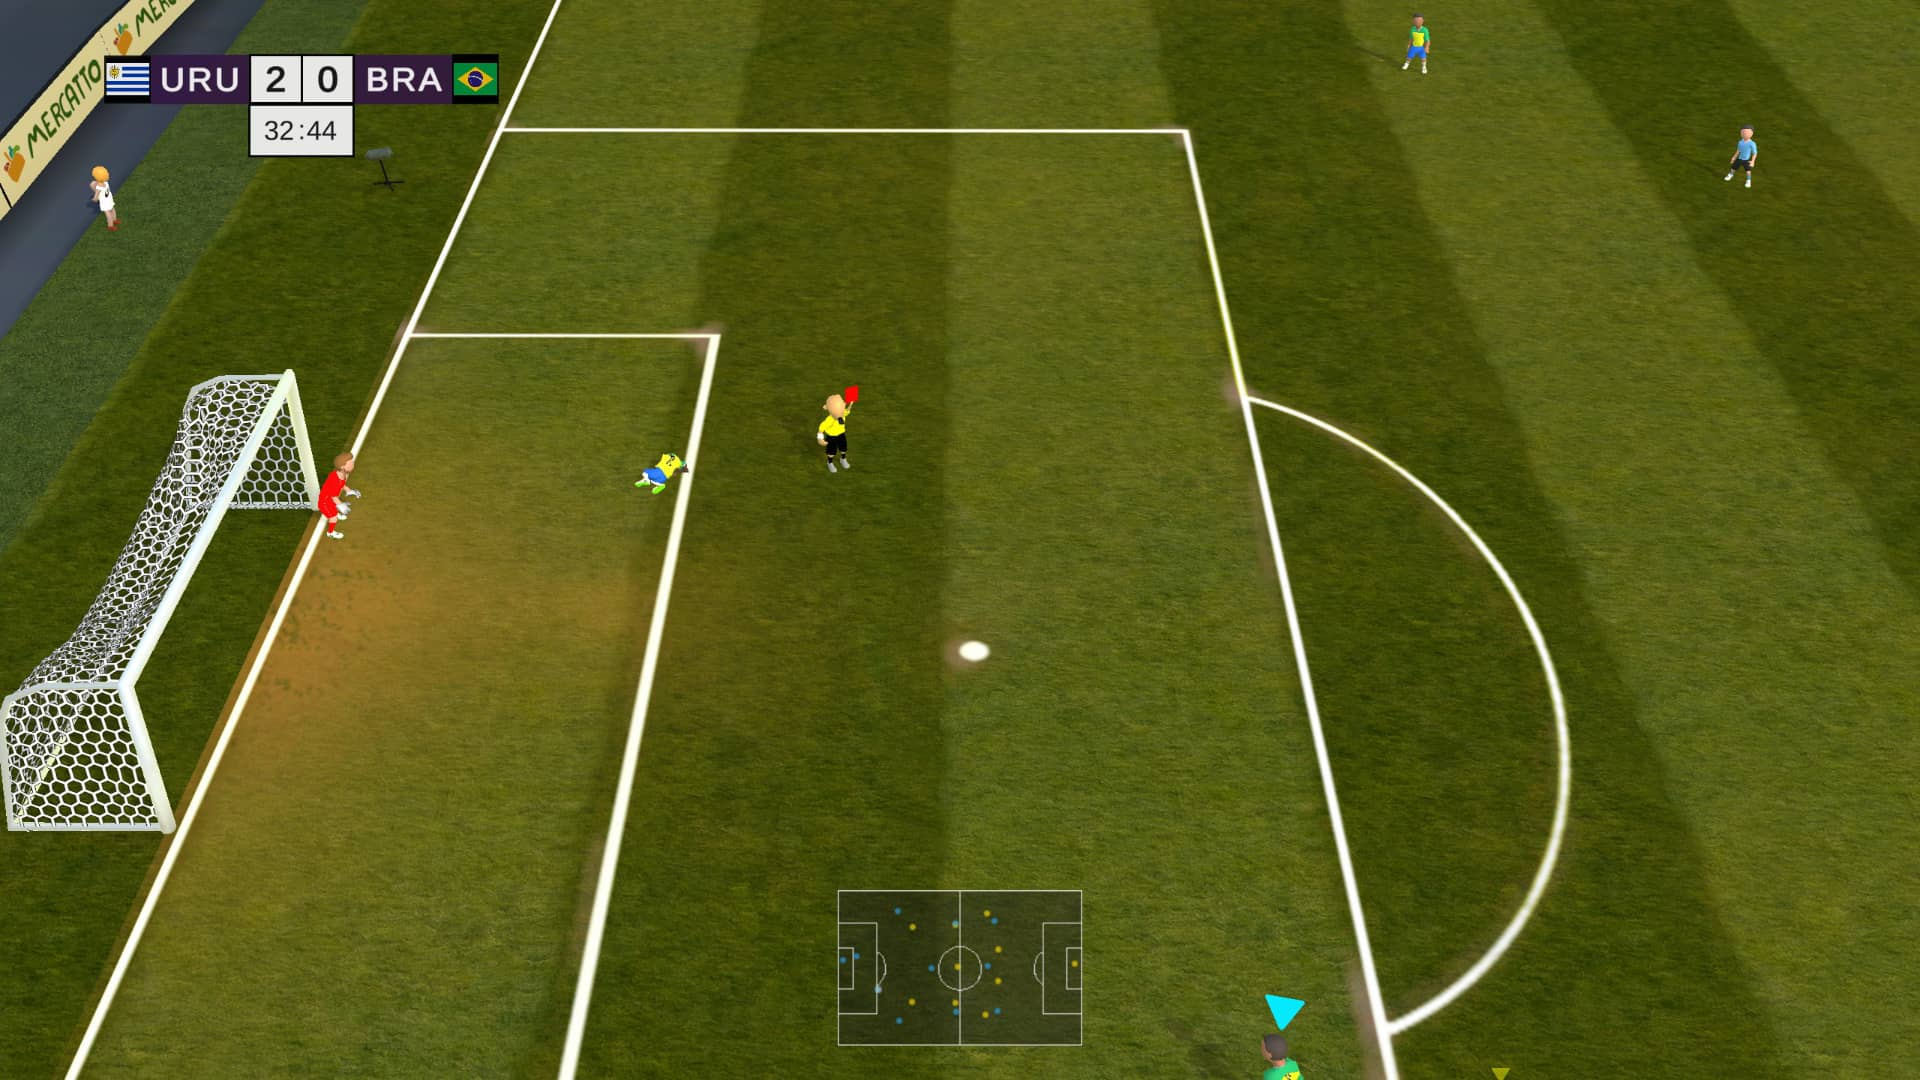 Super Arcade Soccer 2021 Review - Foul play